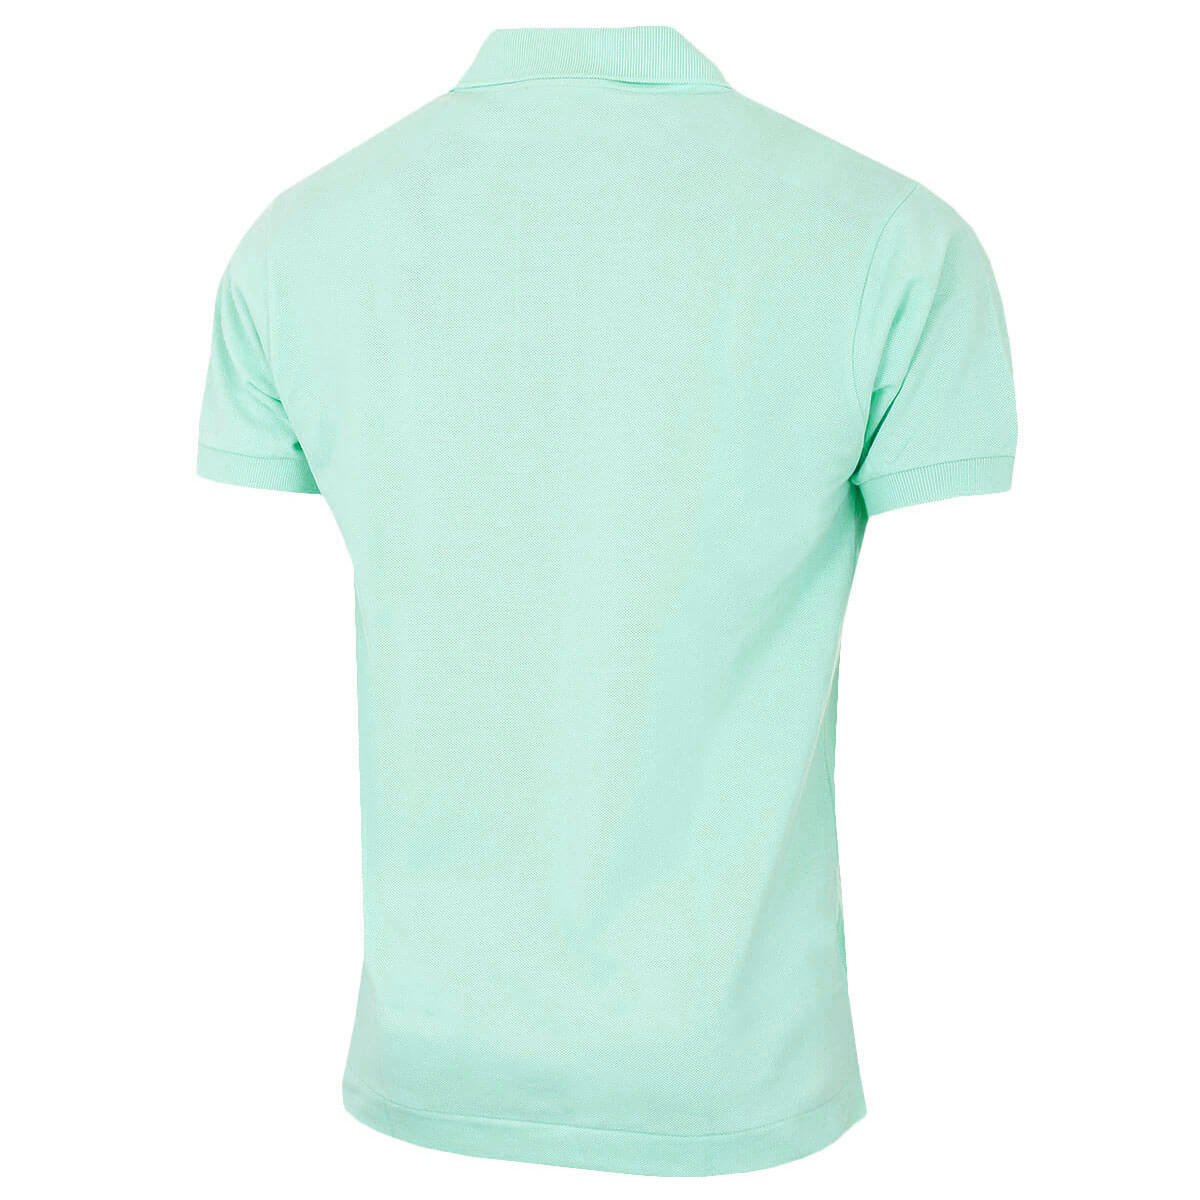 Lacoste-Mens-Classic-Cotton-L1212-Short-Sleeve-Polo-Shirt-26-OFF-RRP thumbnail 11